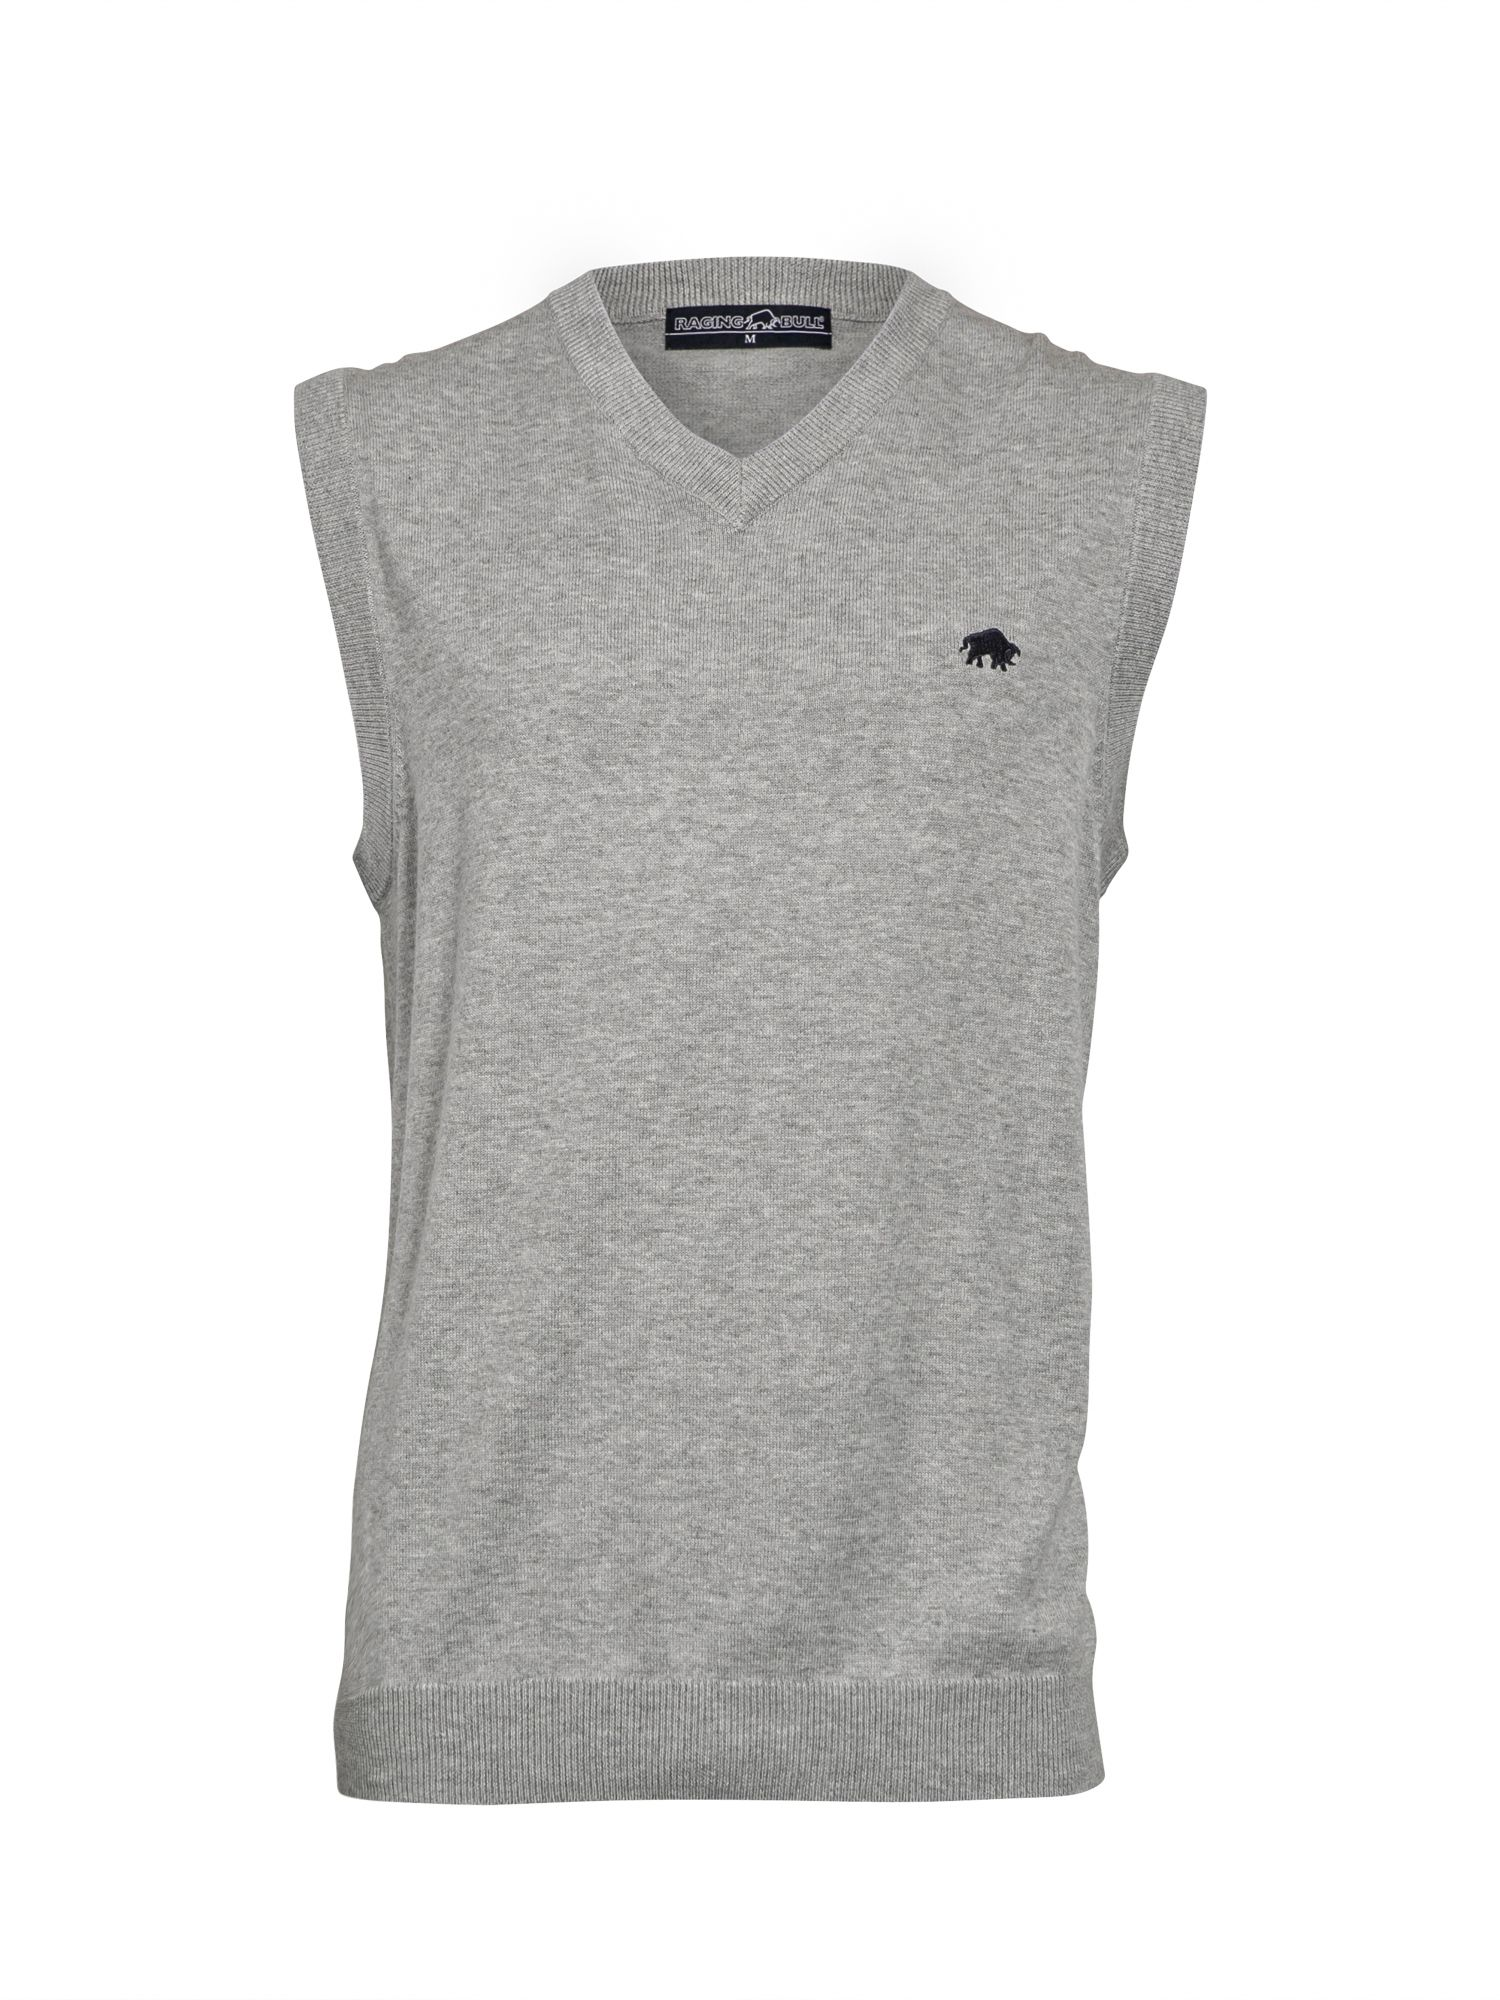 Pima cotton v-neck tank